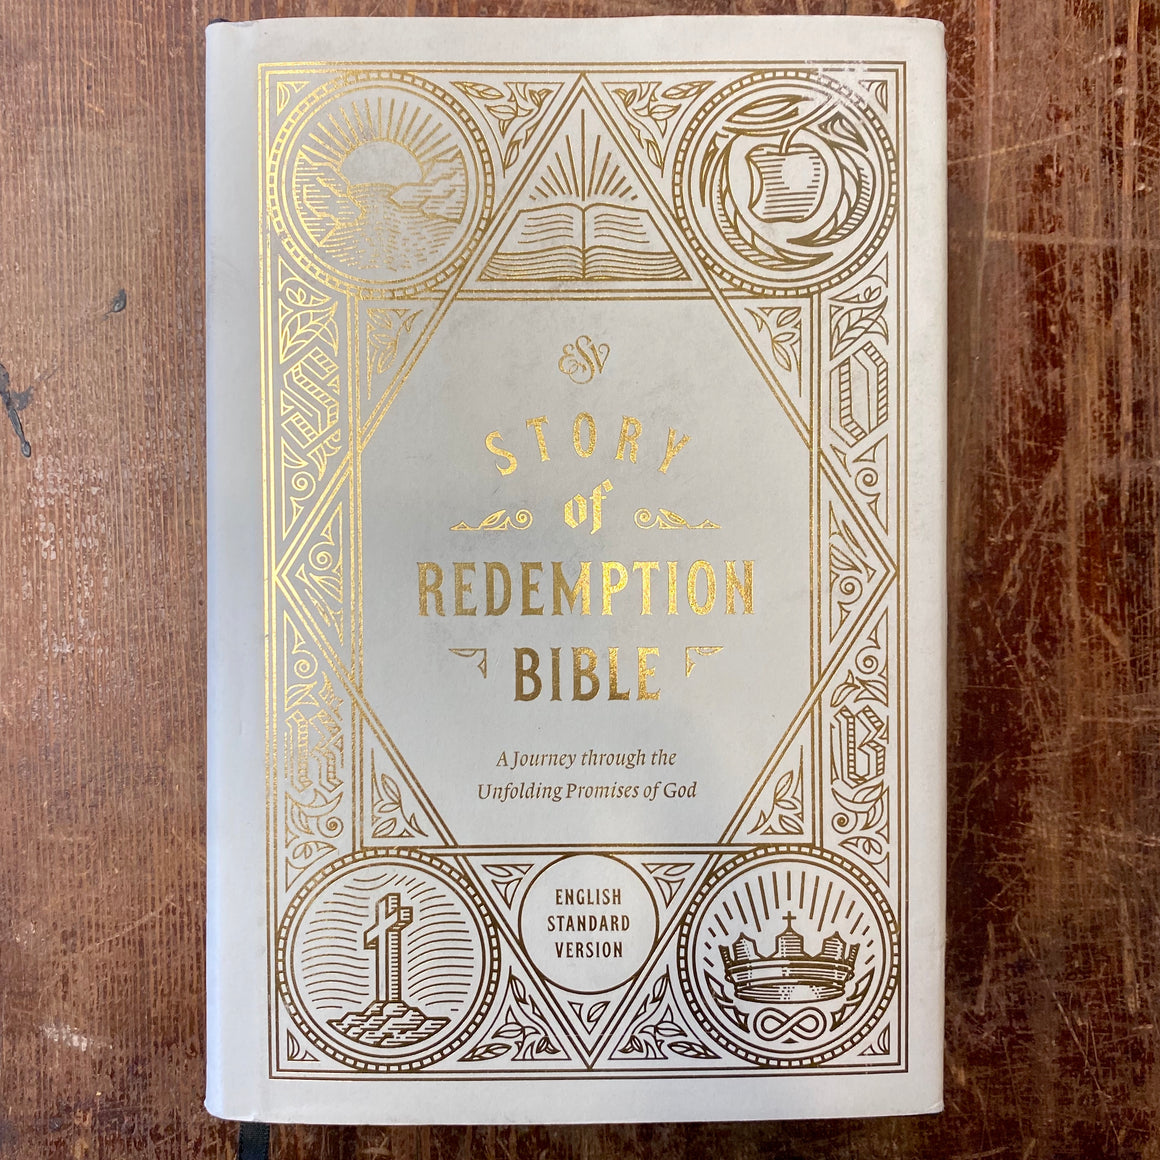 USA Story of Redemption Bible